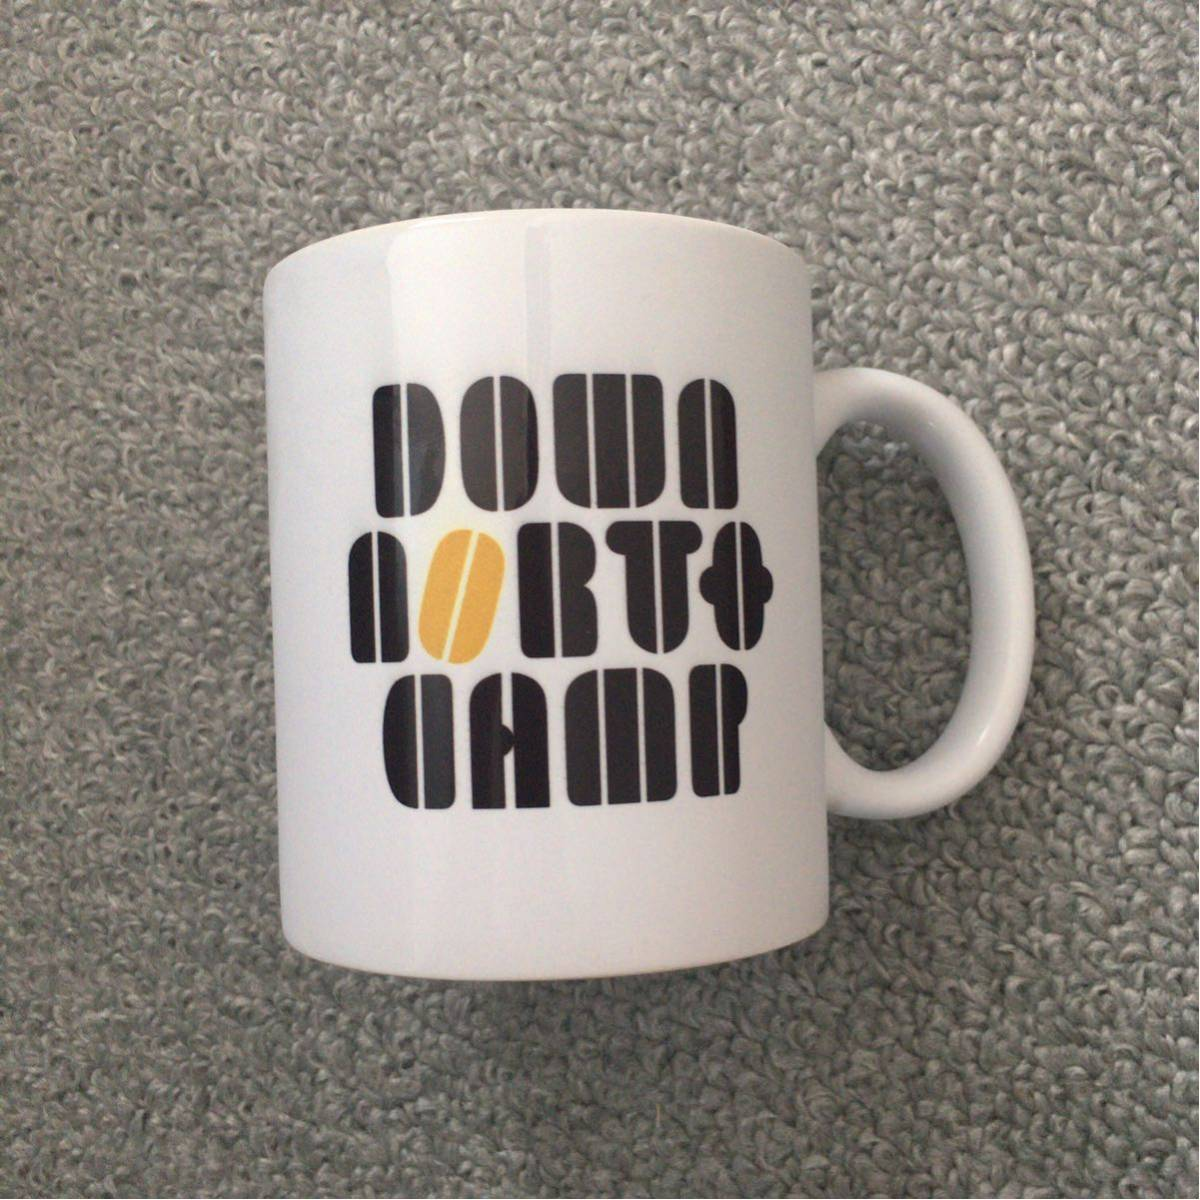 Down North Camp / MUG designed by SECT マグカップ 新品未使用 PUNPEE 5lack 仙人掌 wd sounds